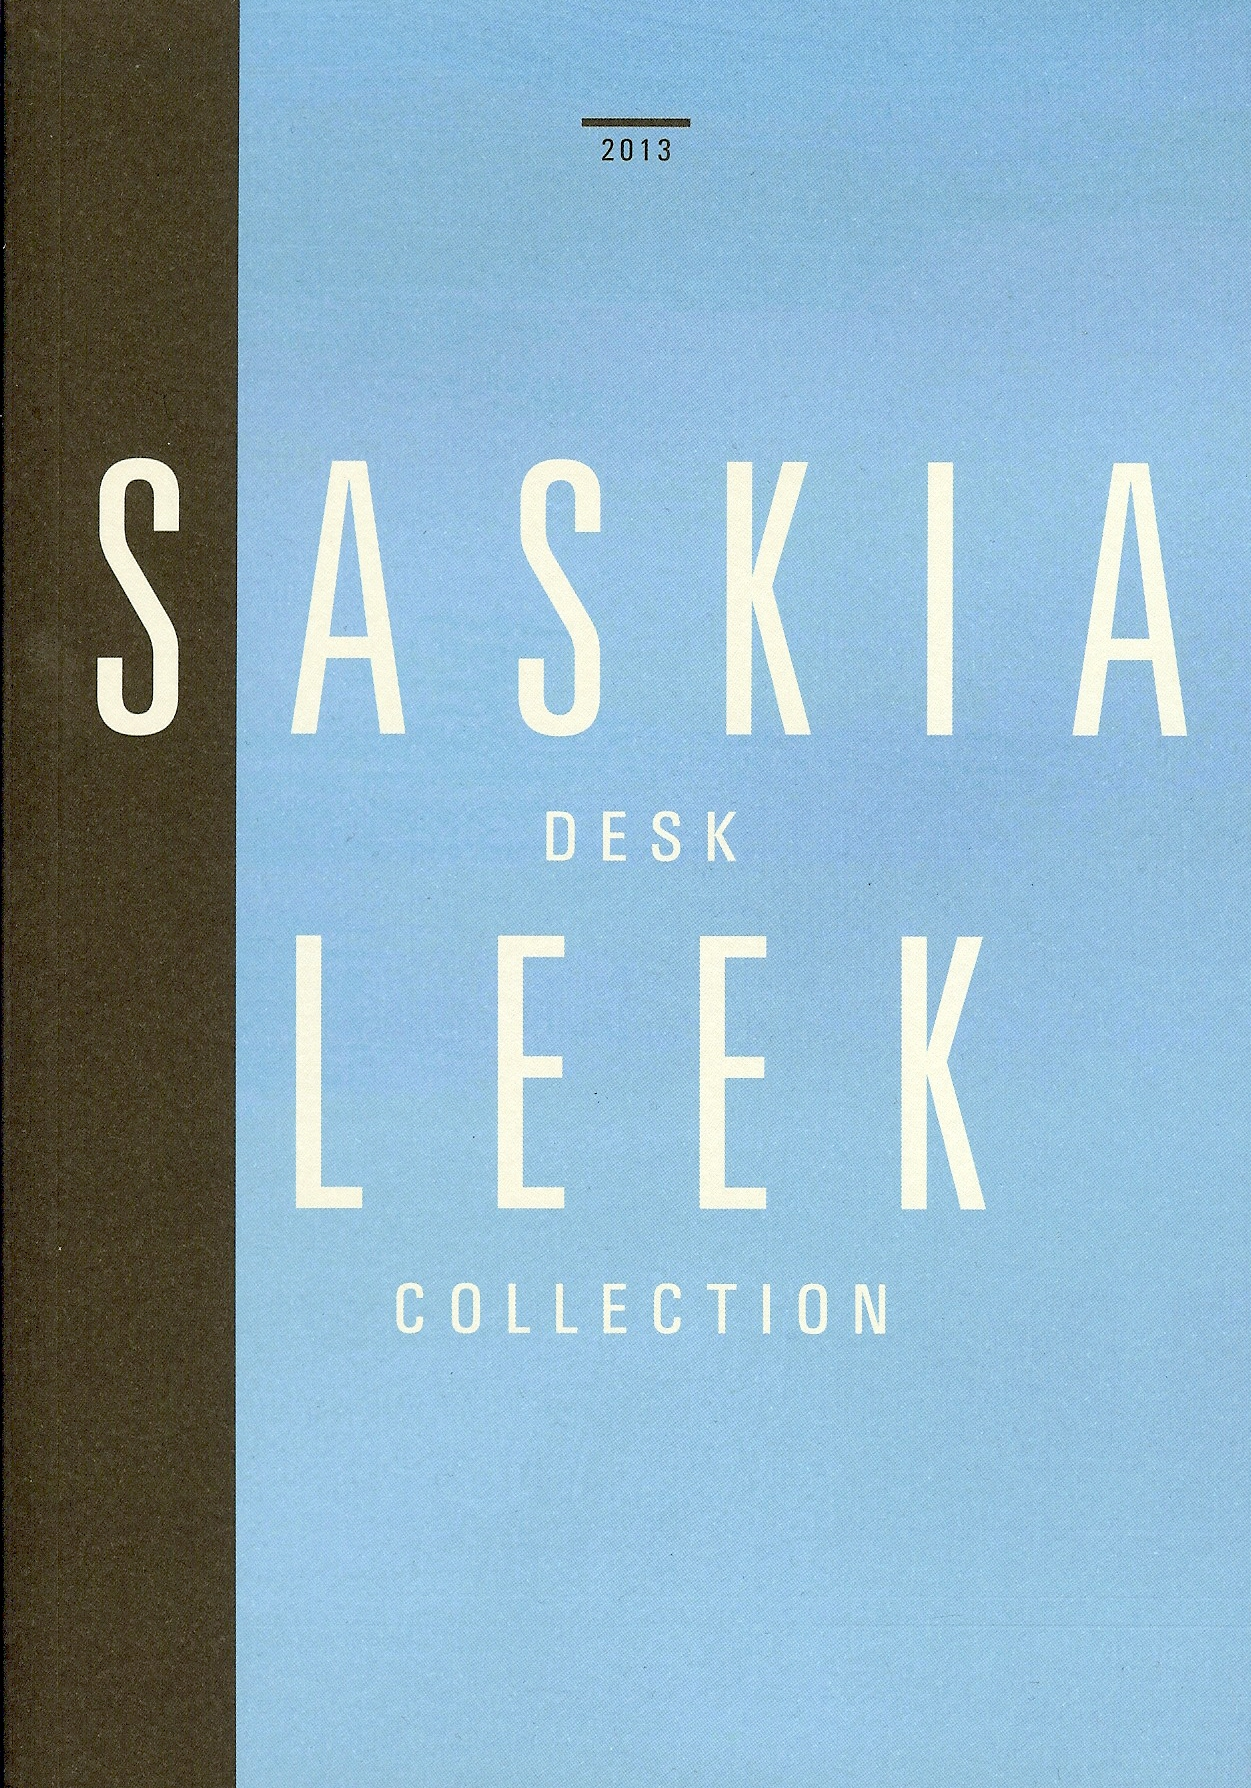 Saskia Leek  Desk Collection  $40.00  Email   enquiries@ivananthony.com   to purchase